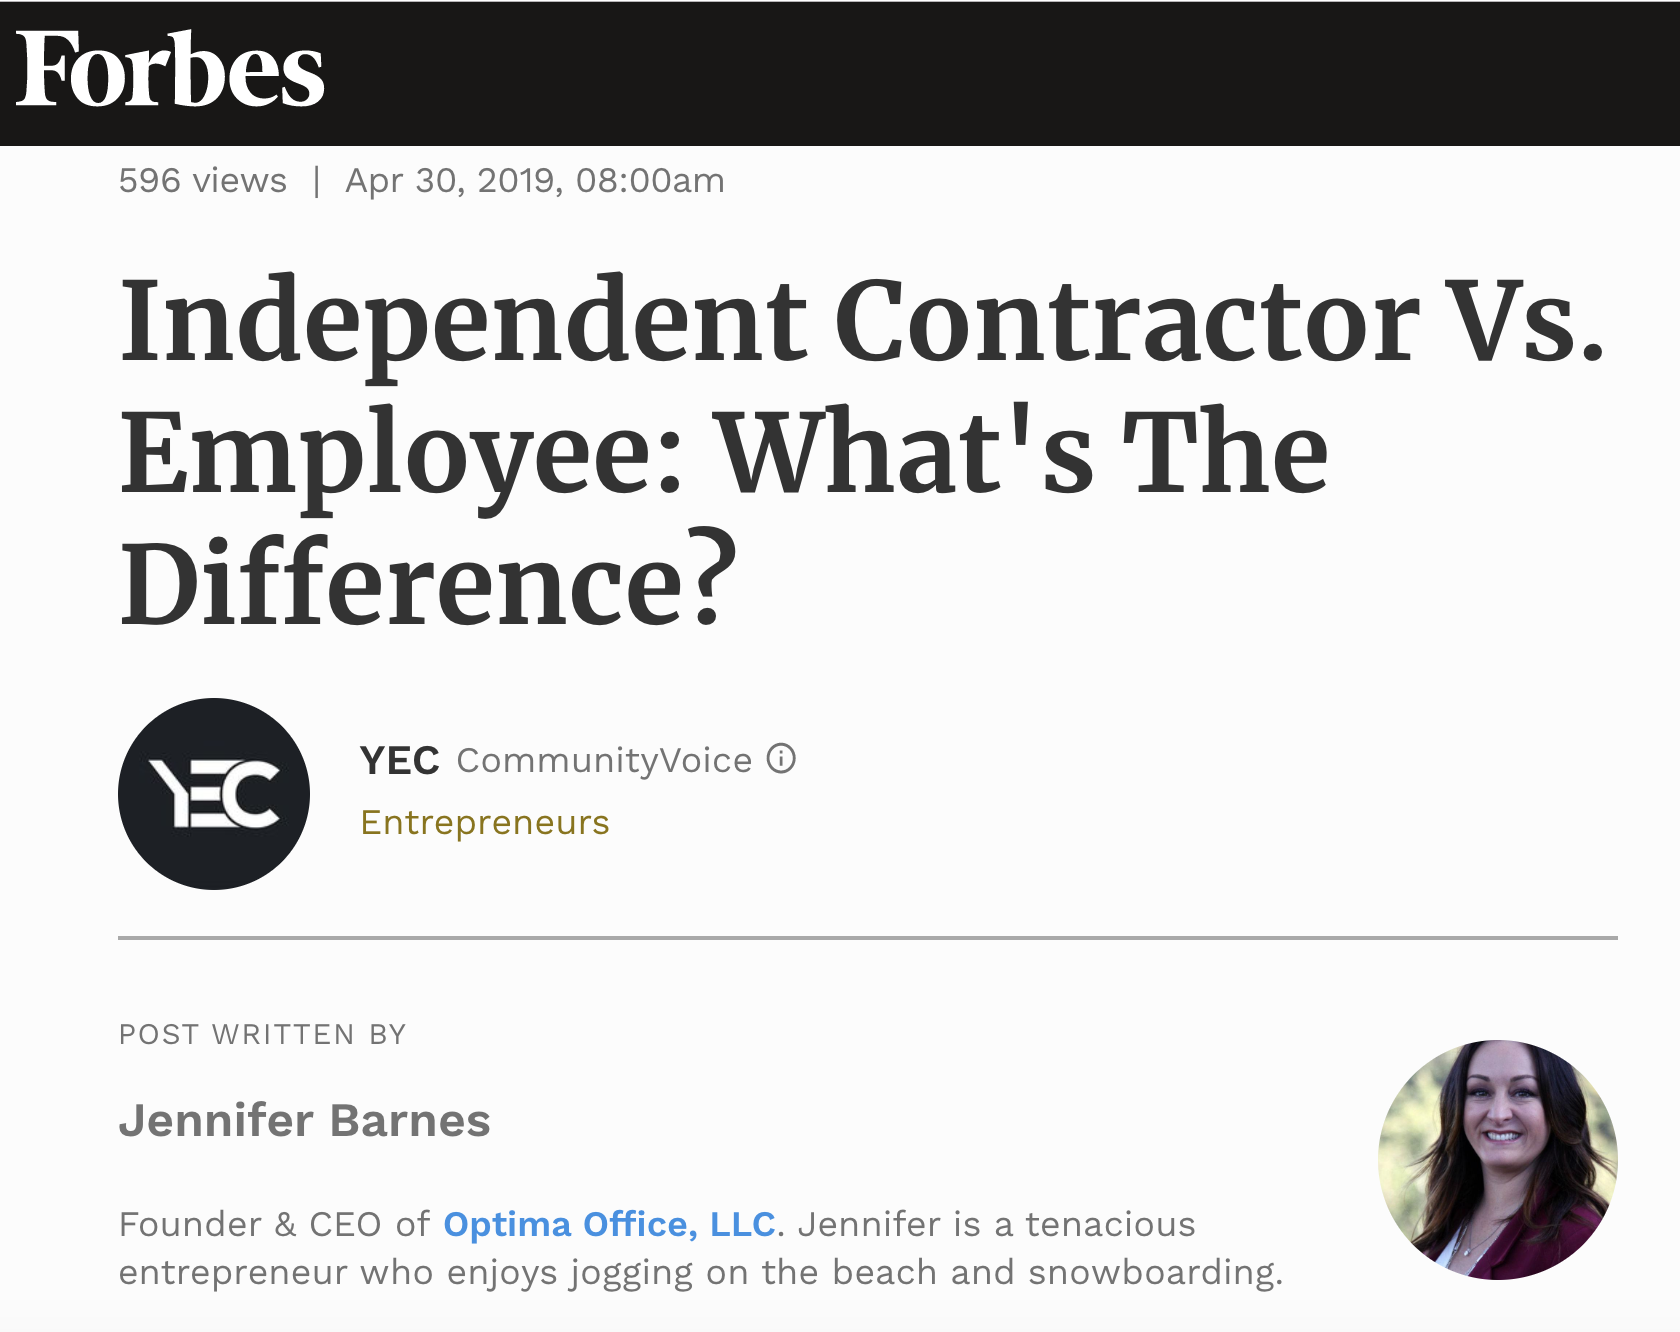 """If your business hires independent contractors on a regular basis as part of your normal business operations, then you are going to want to make sure that your worker classifications are correct.  This can seem like a daunting task once you start to look through all of the federal and state determination requirements for classification as a contractor (Form 1099-MISC) versus employee (Form W-2), and the fact that federal and state requirements can also contradict each other can make it an even larger issue."""